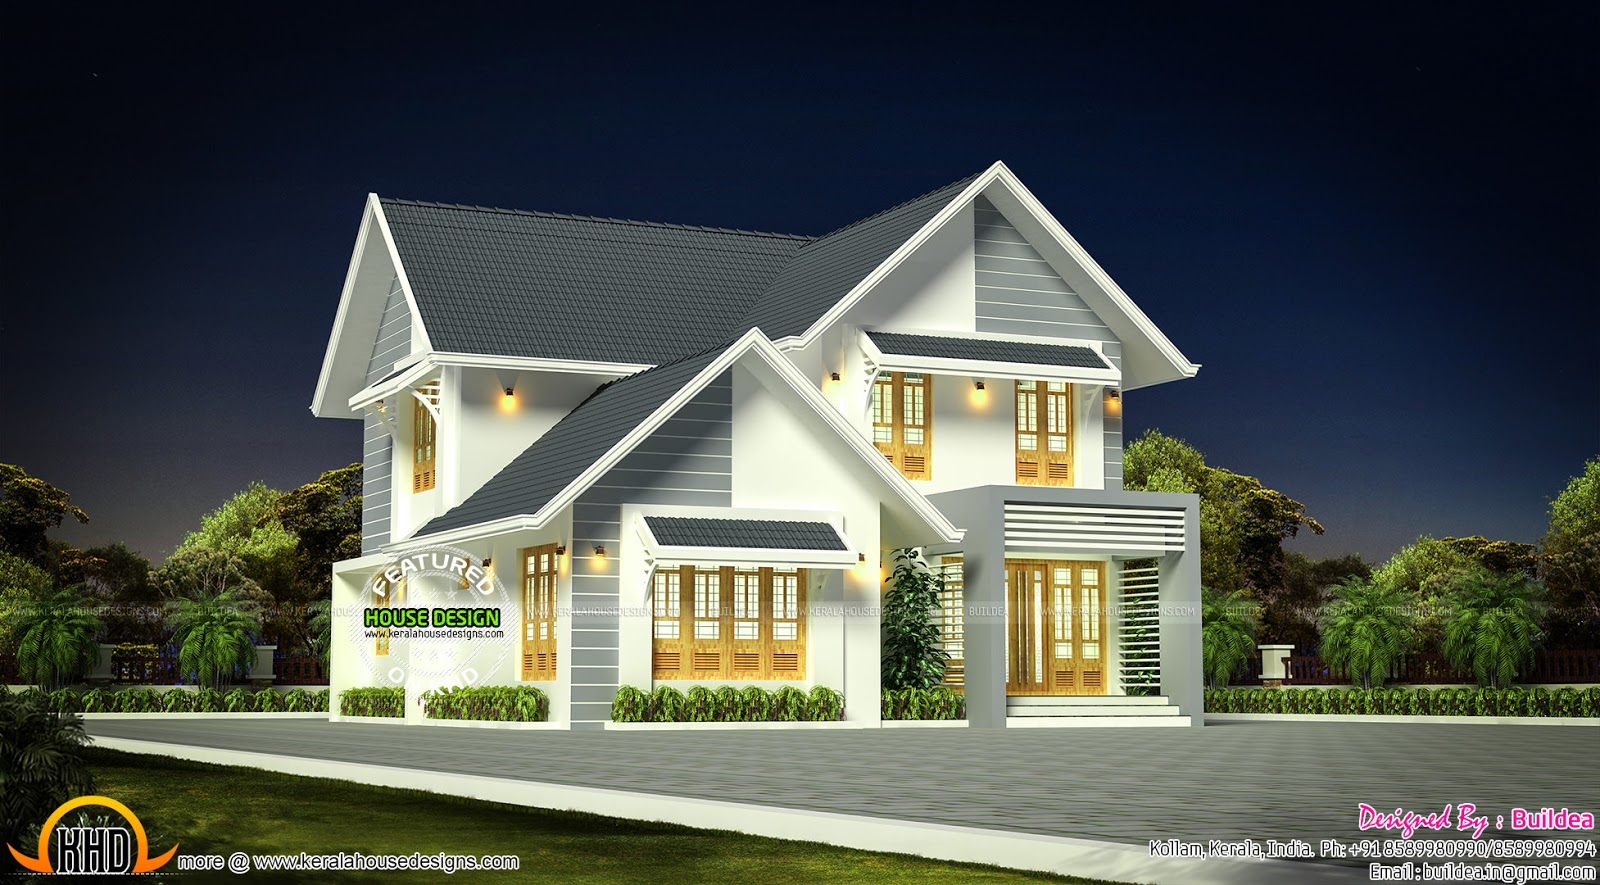 4 bhk home in 1900 sq ft kerala home design and floor plans for 4 bhk house plan ground floor